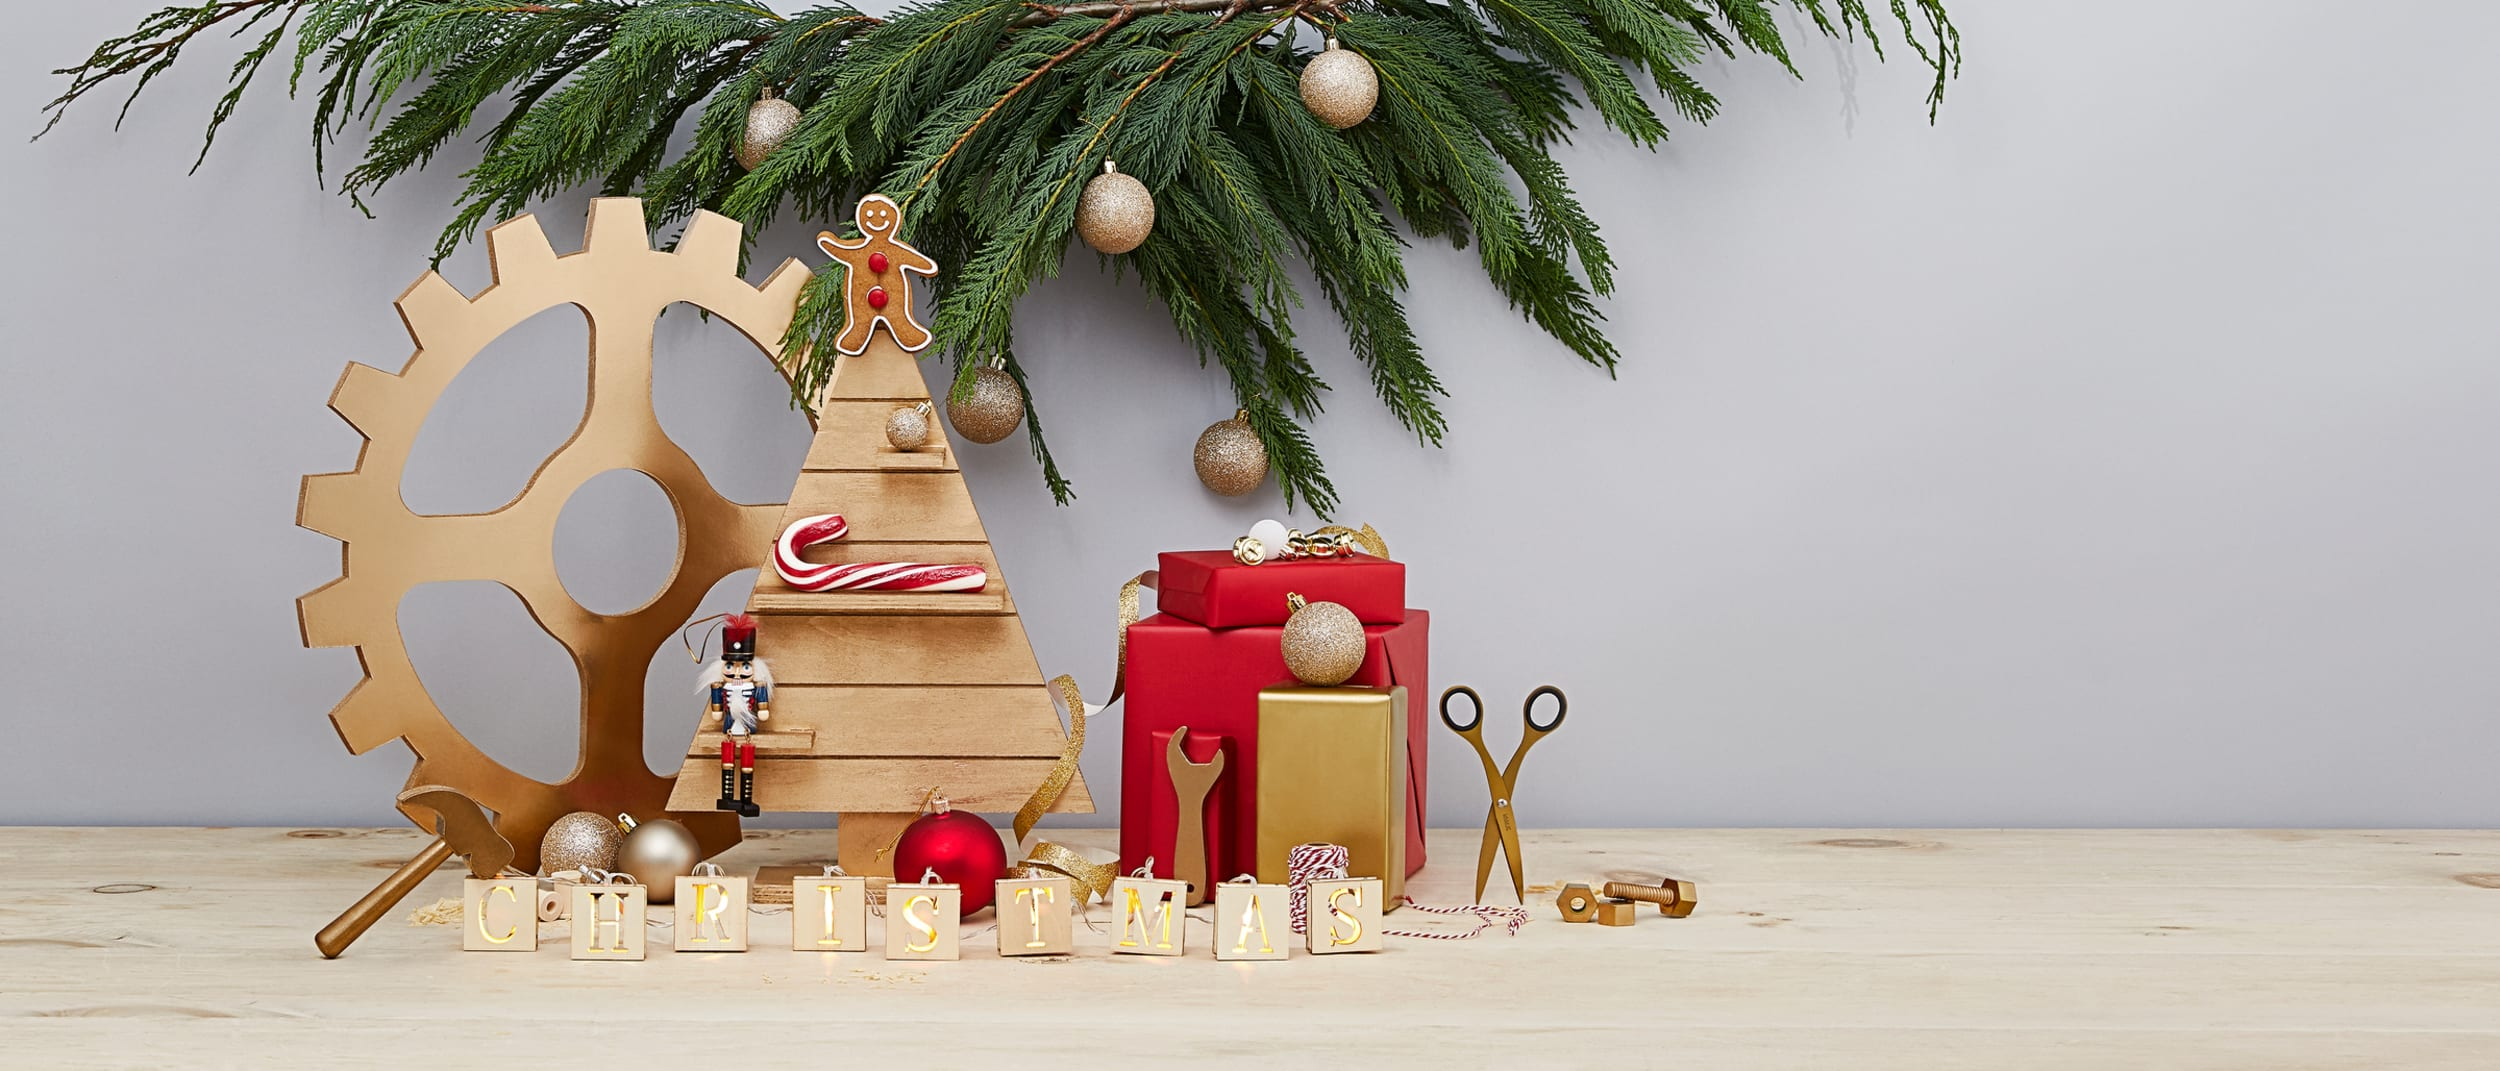 Deck the halls: Christmas decoration ideas for any style